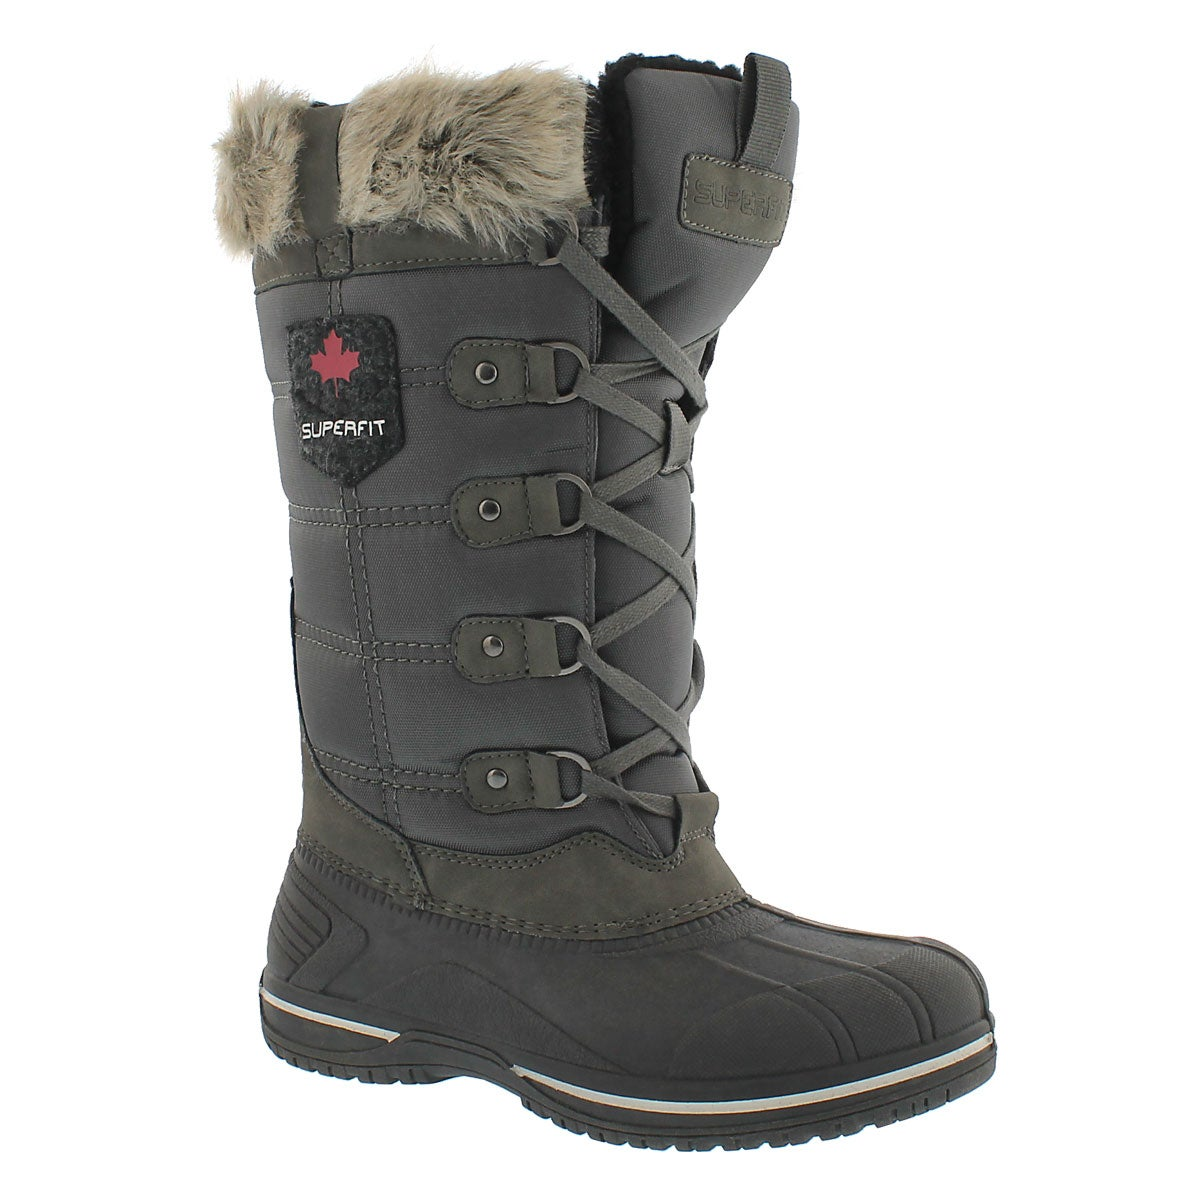 Lds Clara char wtrpf tall winter boot